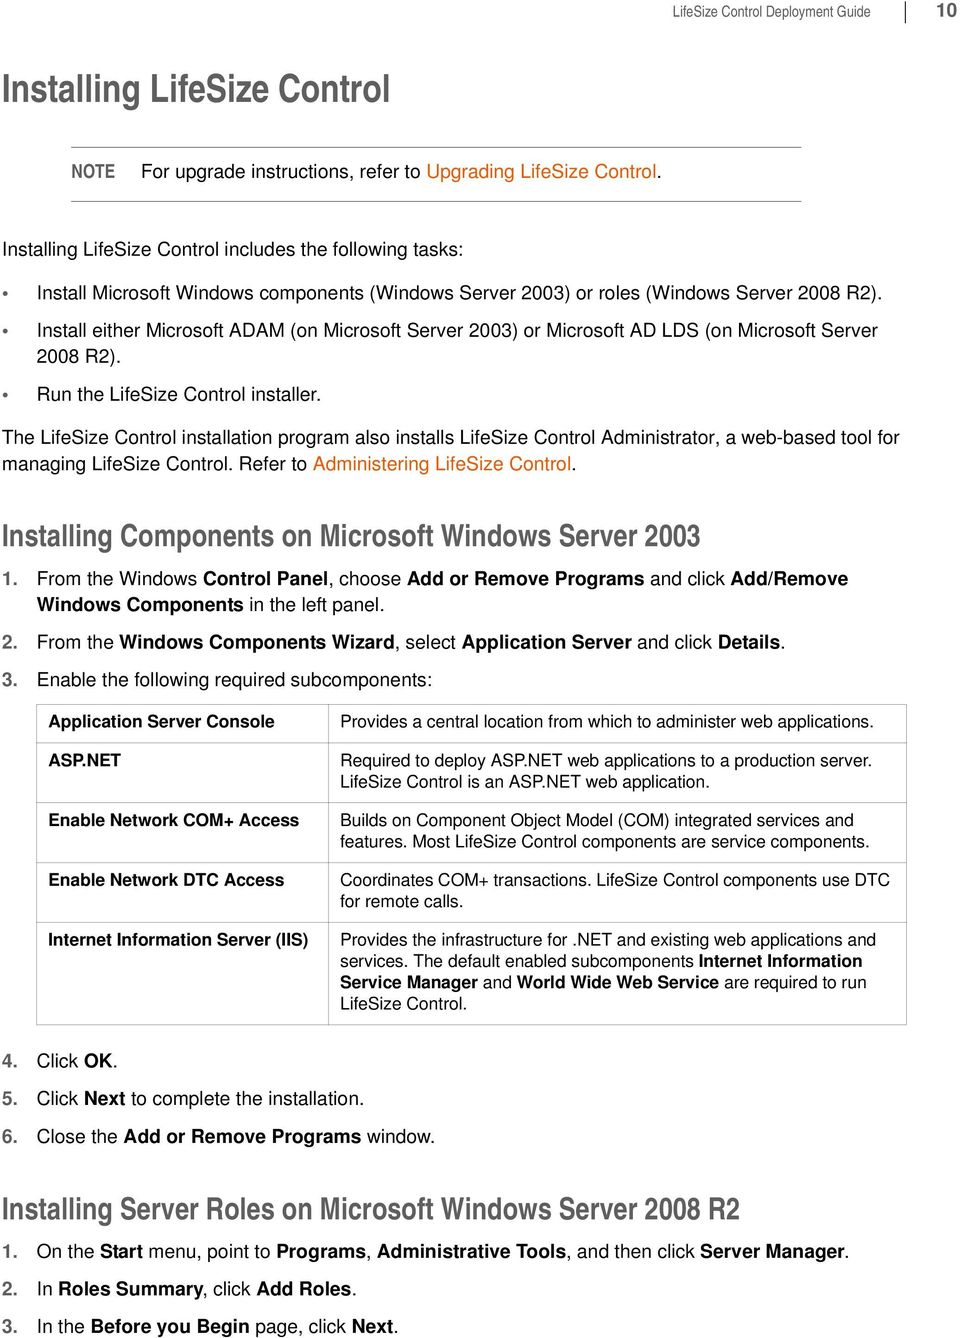 Install either Microsoft ADAM (on Microsoft Server 2003) or Microsoft AD LDS (on Microsoft Server 2008 R2). Run the LifeSize Control installer.